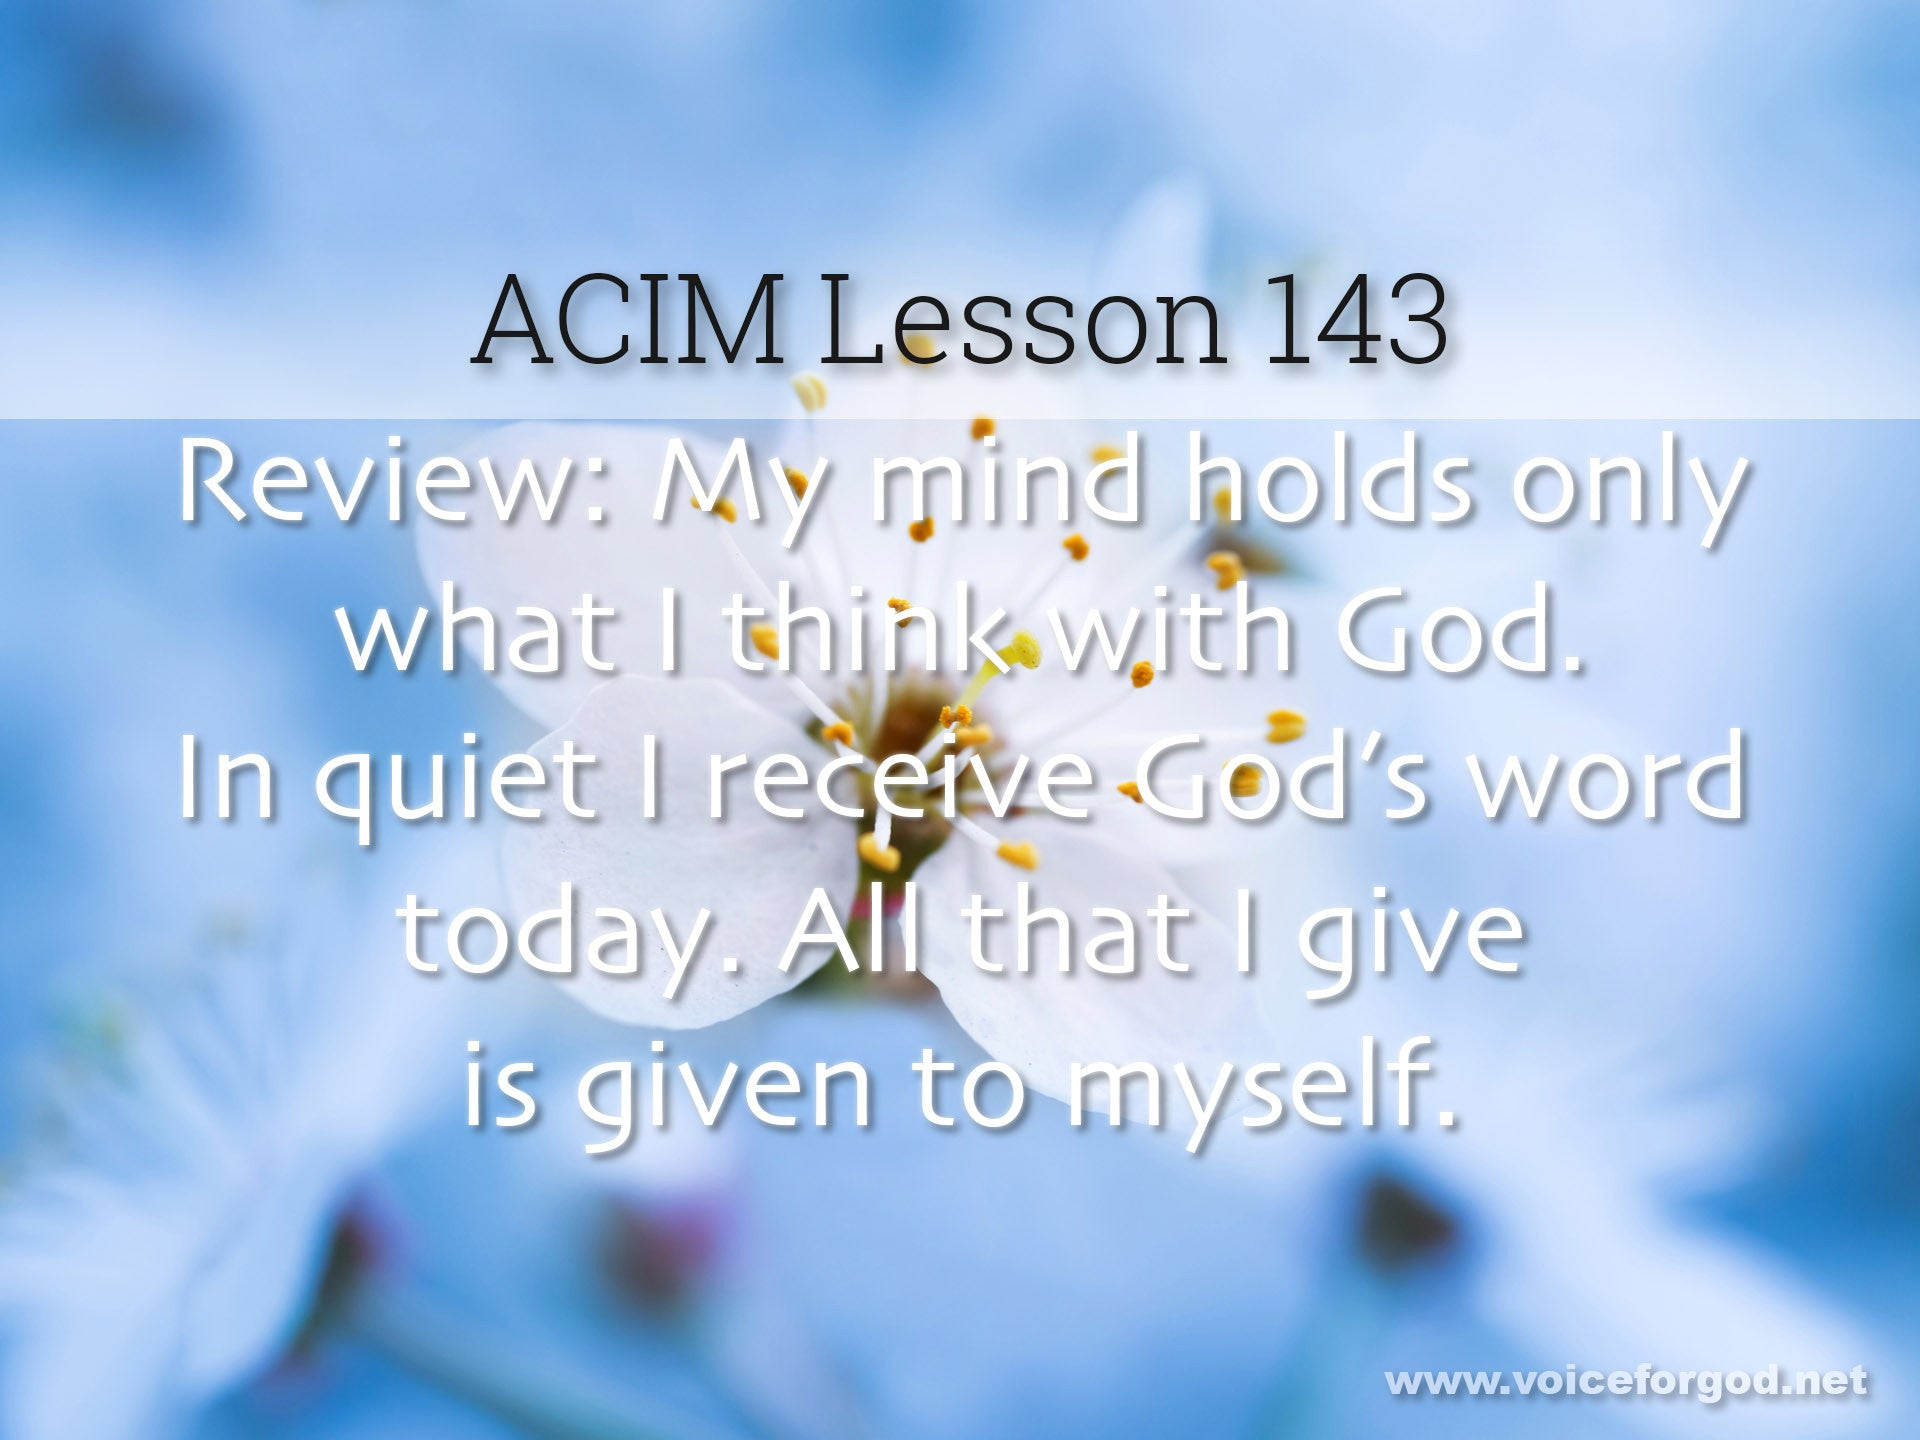 ACIM Lesson 143 - A Course in Miracles Workbook Lesson 143